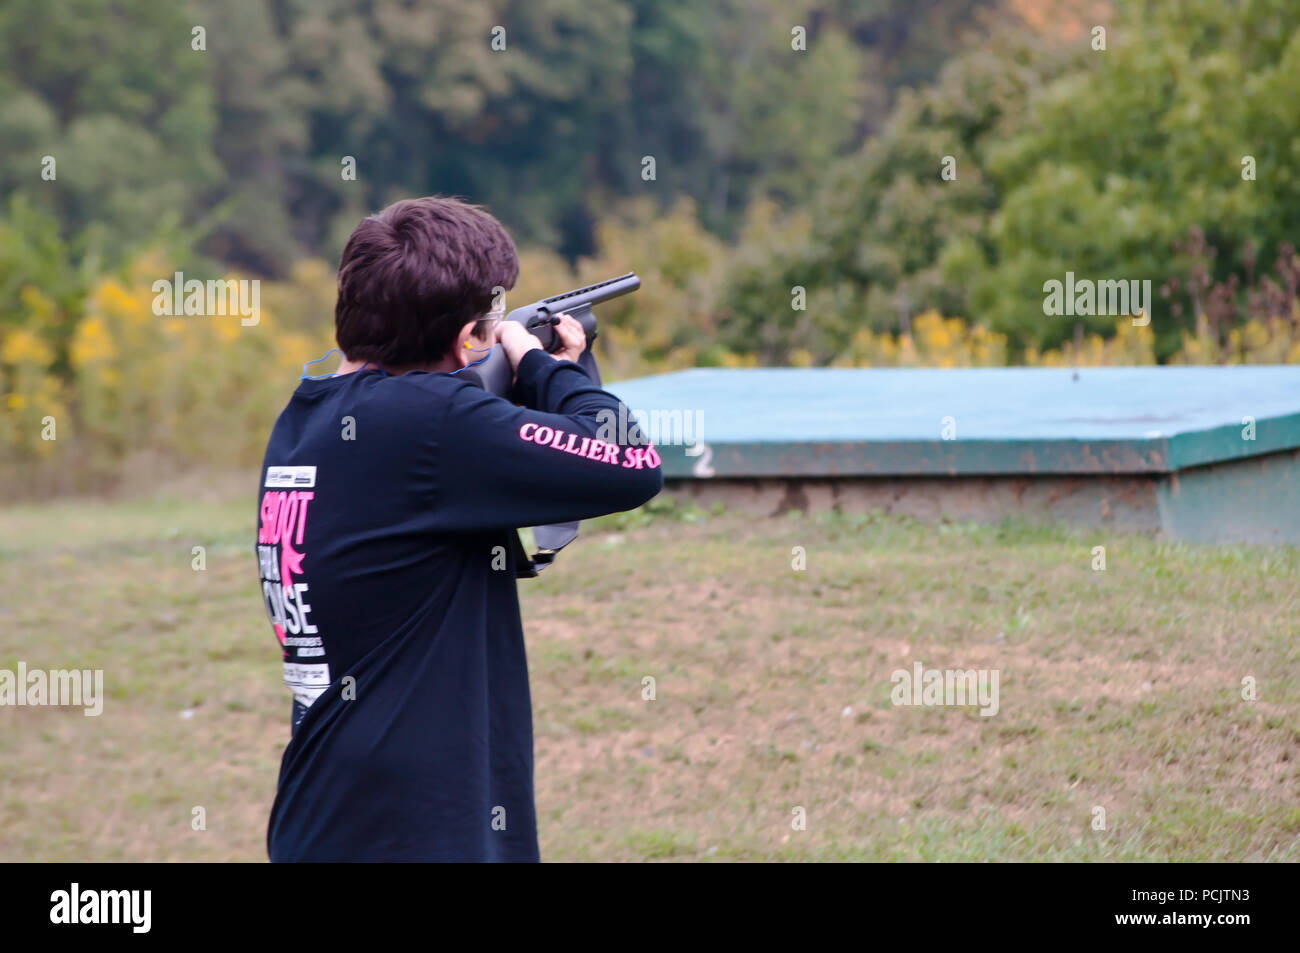 A young man taking aim on the line trap shooting at the Collier's Sportsman club in Collier, PA, USA - Stock Image